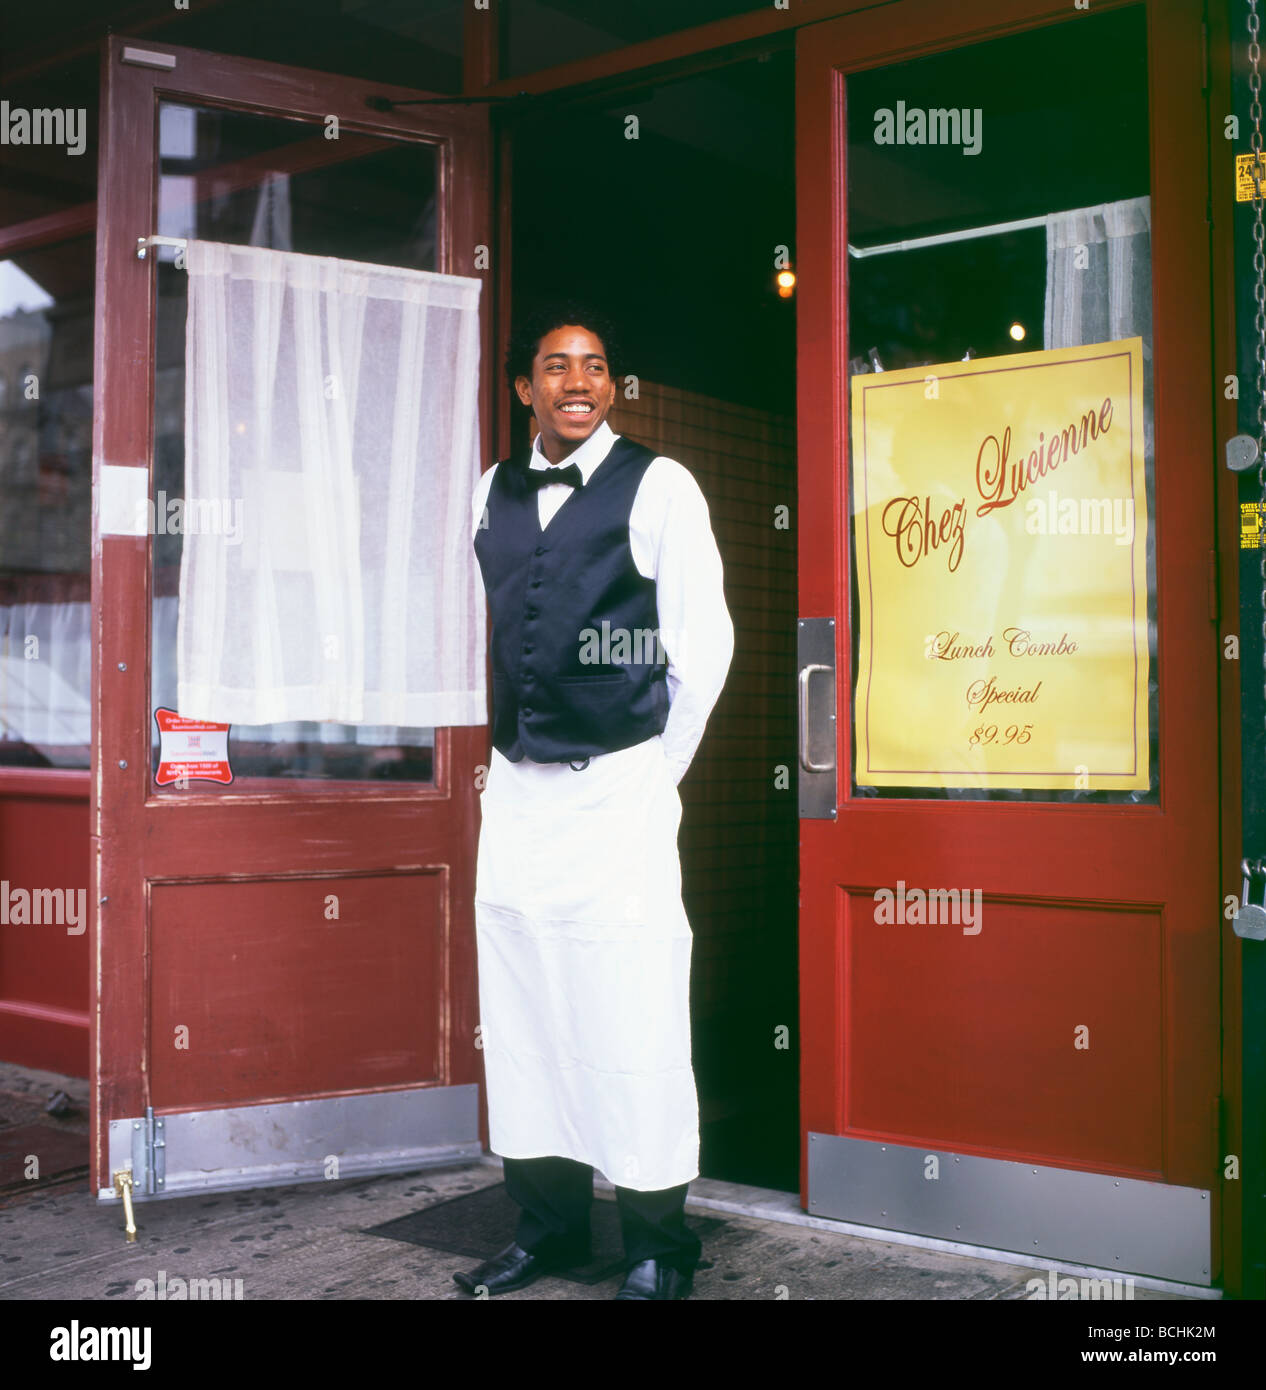 A young waiter at Chez Lucienne restaurant Harlem Manhattan NYC - Stock Image